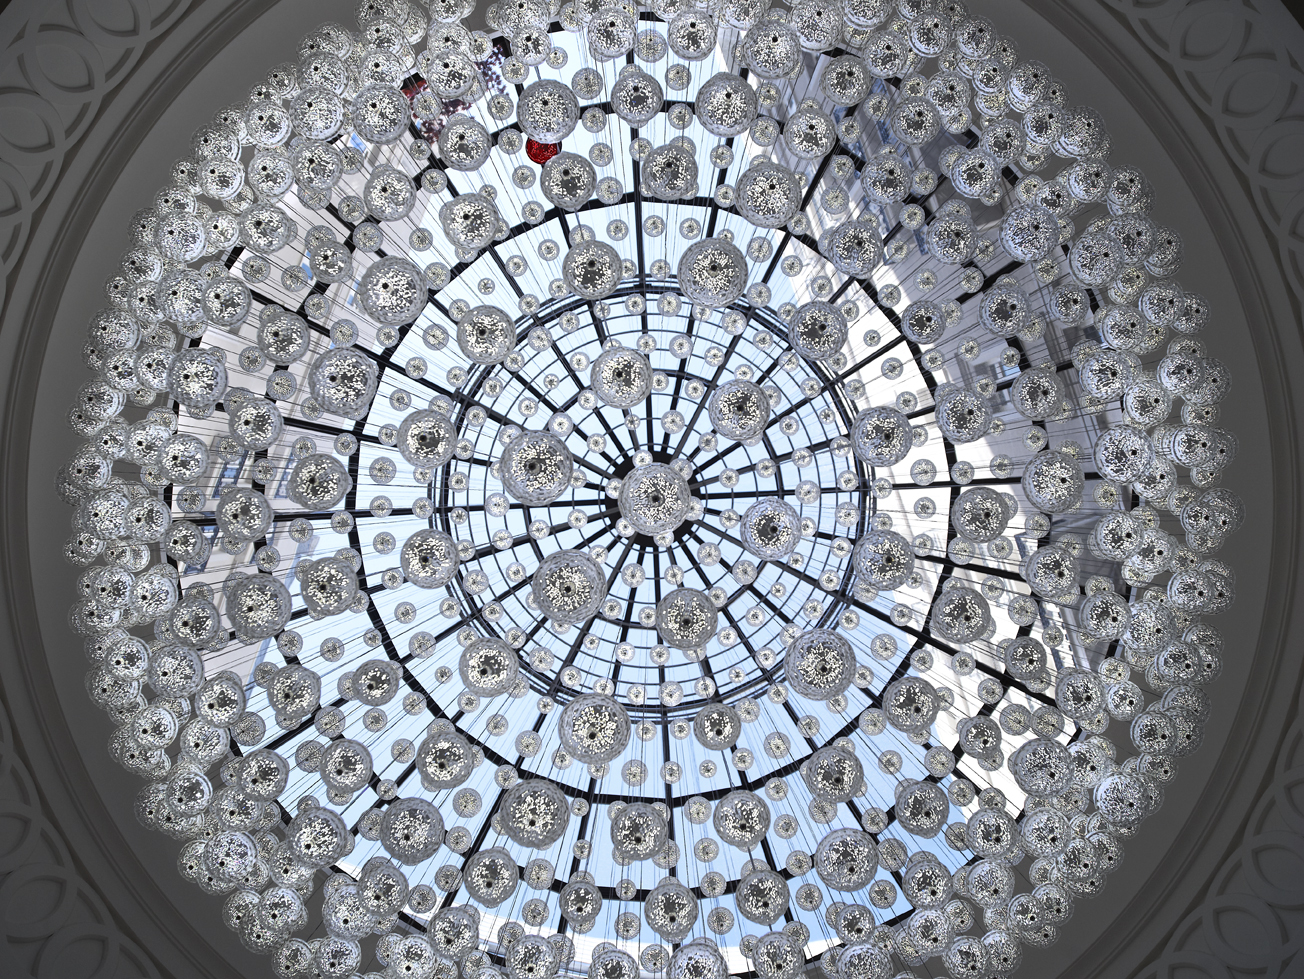 Baccarat Chandelier full view Corinthia Hotel London